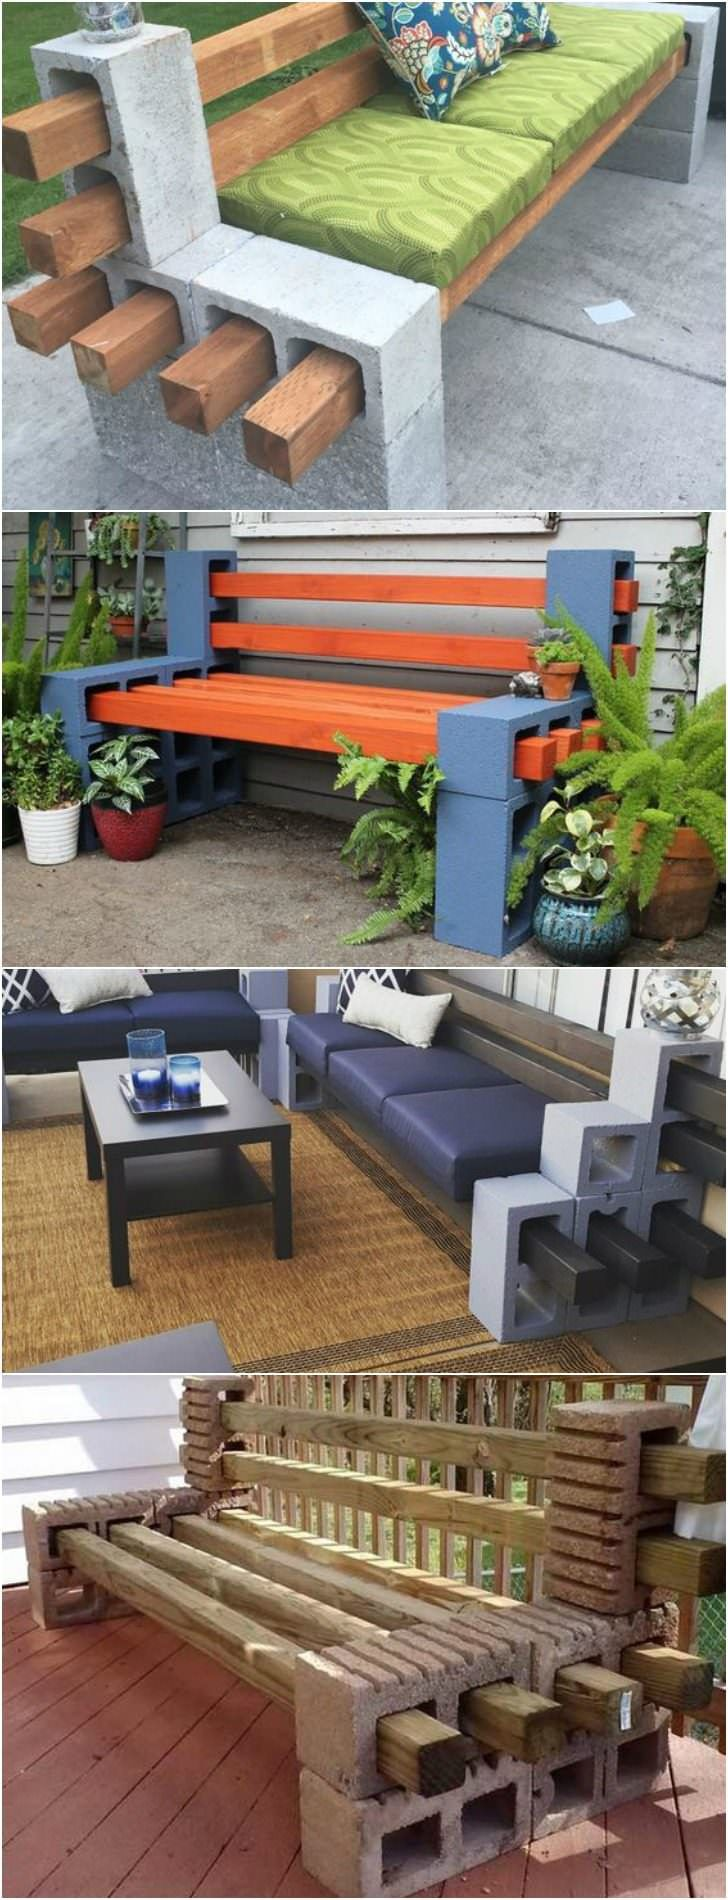 Panchine In Cemento Da Esterno.How To Make A Cinder Block Bench 10 Amazing Ideas To Inspire You